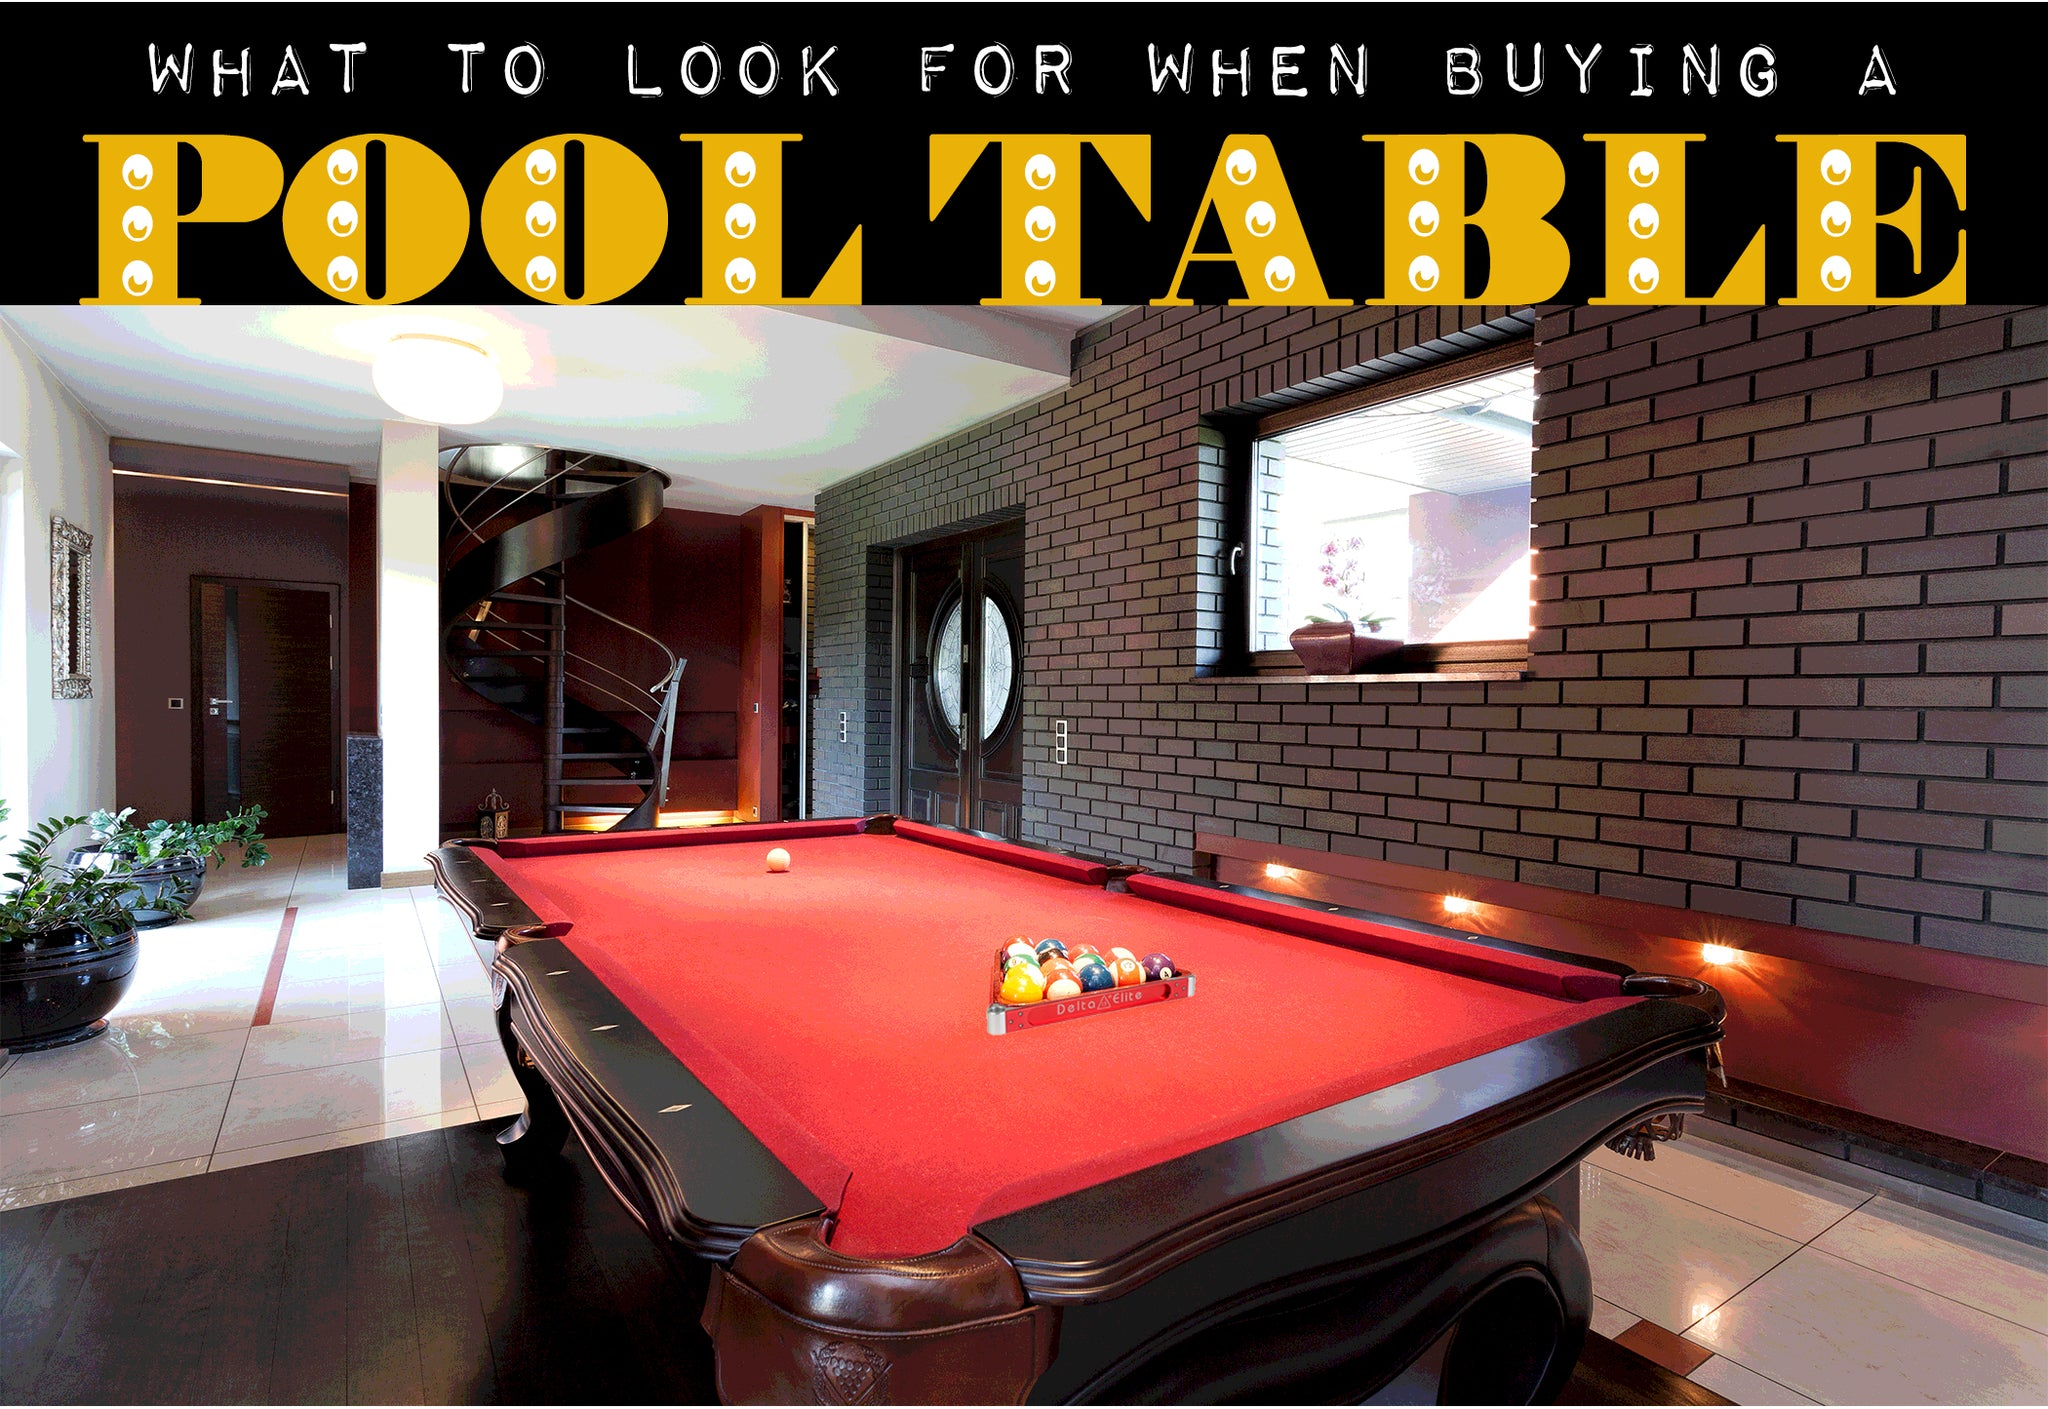 Purchasing a pool table